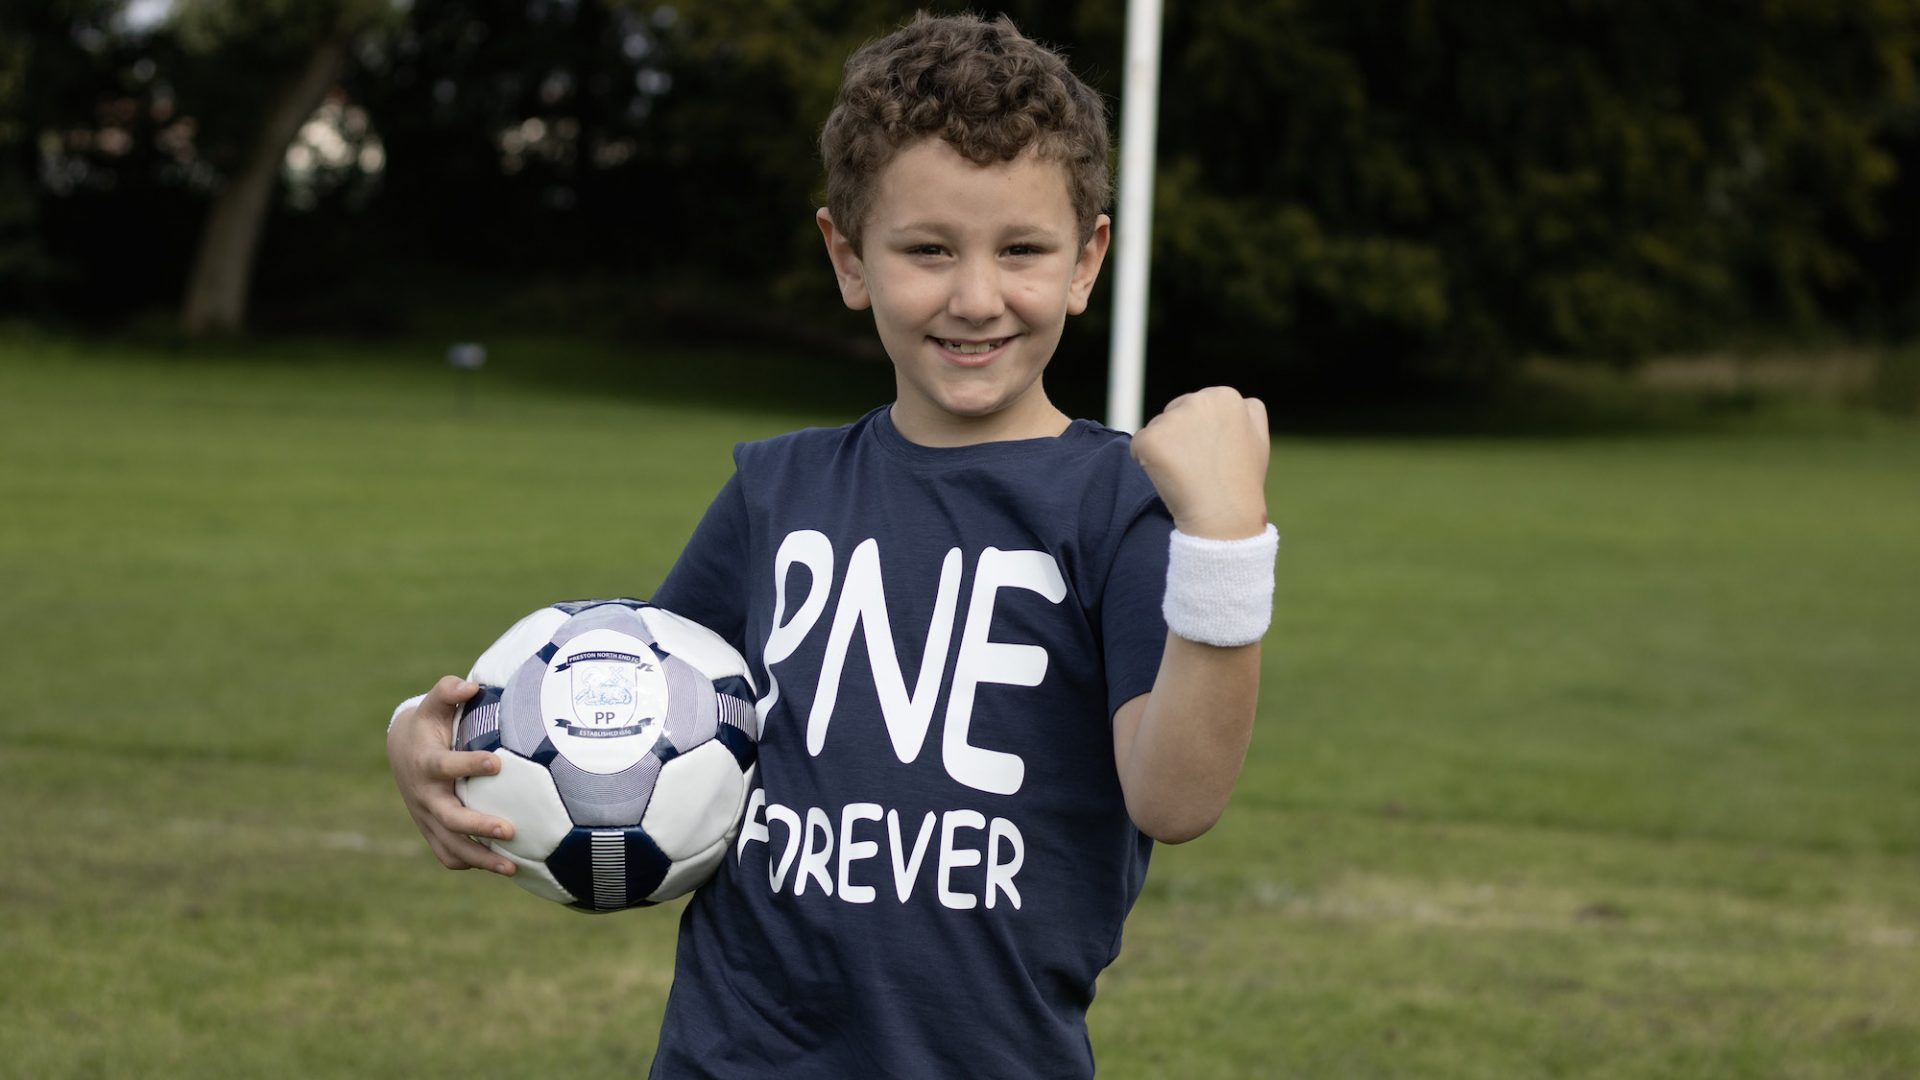 Little boy with a football and PNE shirt